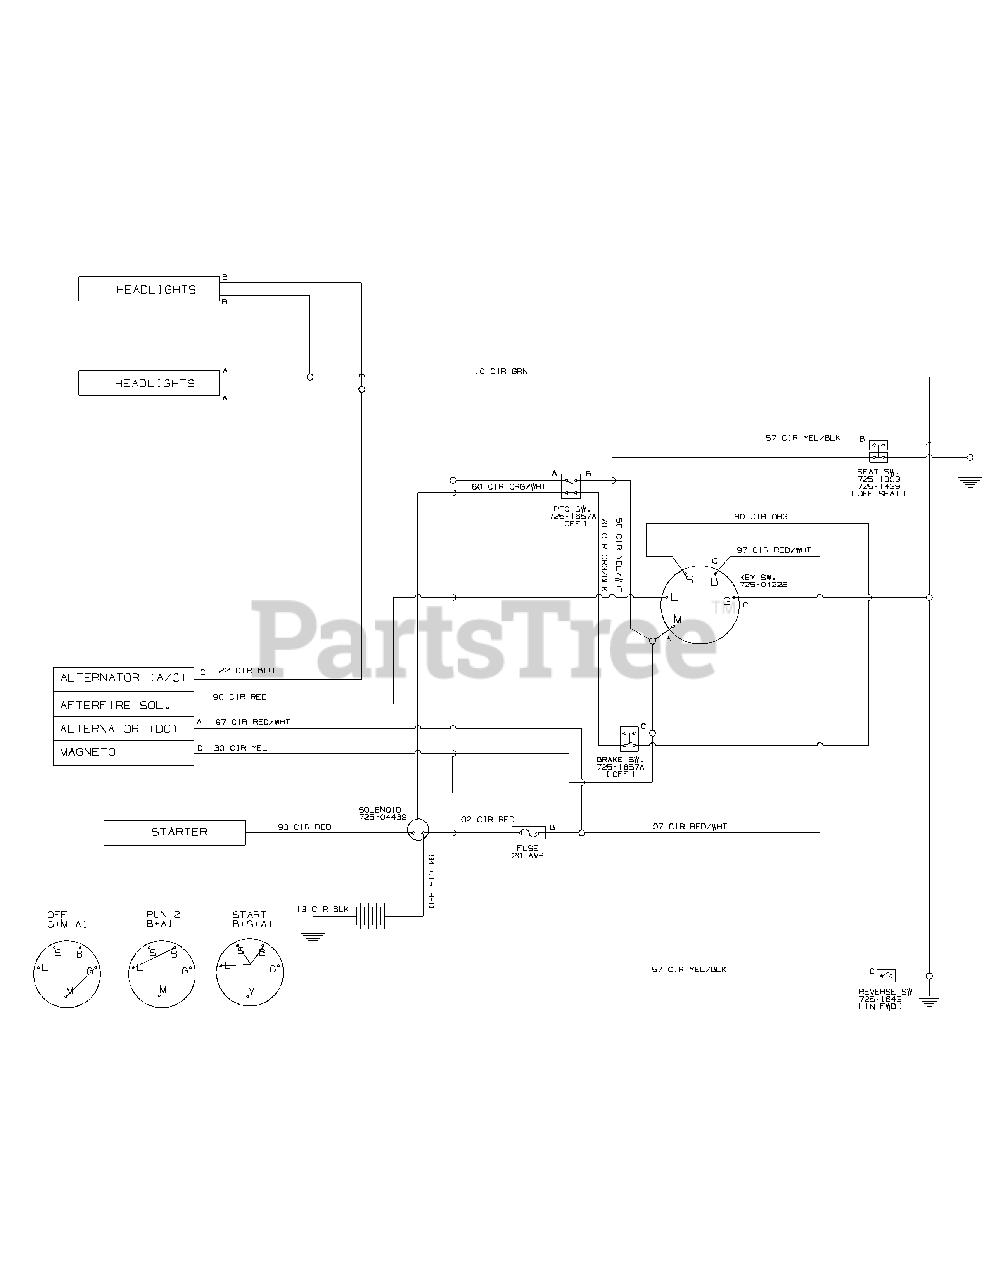 [ZTBE_9966]  DIAGRAM] Troy Bilt Pony Lawn Tractor Wiring Diagram FULL Version HD Quality Wiring  Diagram - K98SCHEMATIC4849.BEAUTYWELL.IT | Wiring Diagram For Troy Bilt Pony Schematic |  | k98schematic4849.beautywell.it